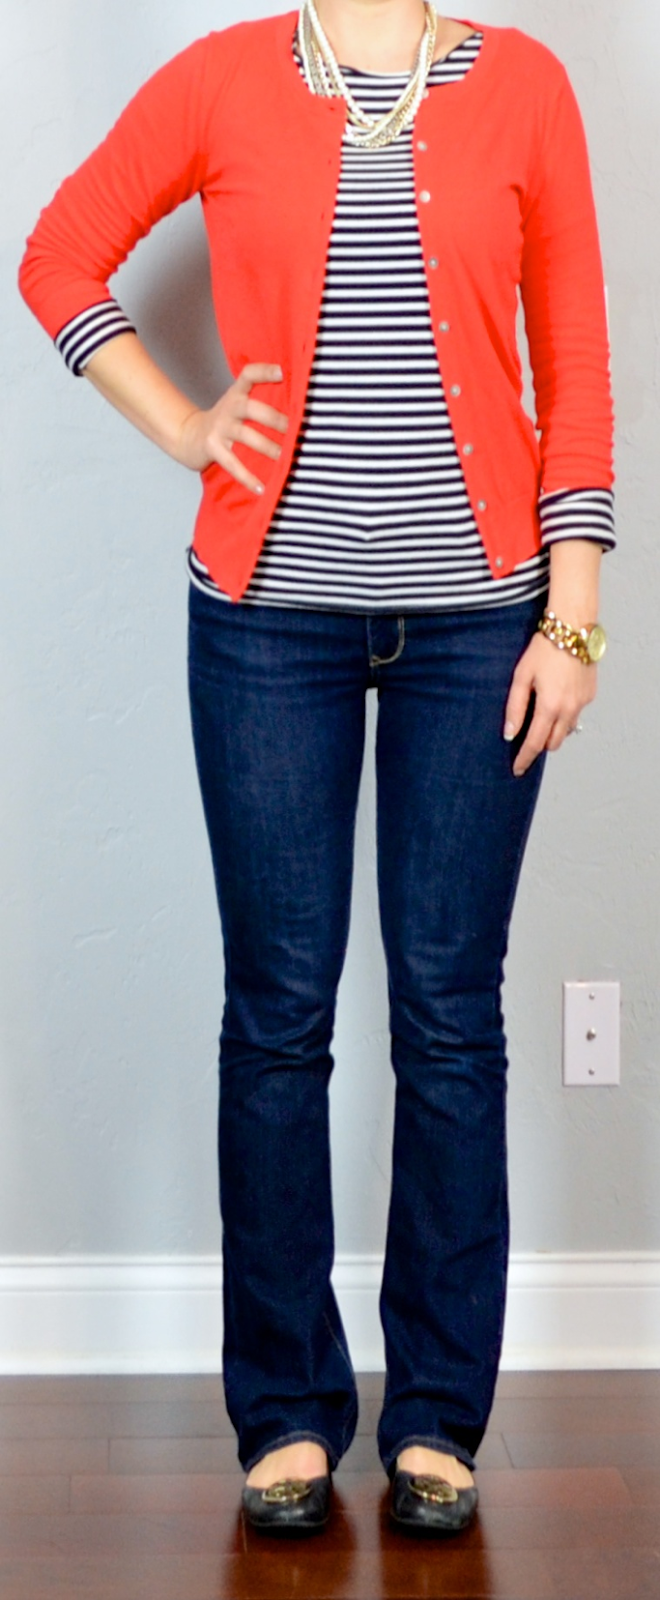 outfit post red cardigan striped shirt bootcut jeans